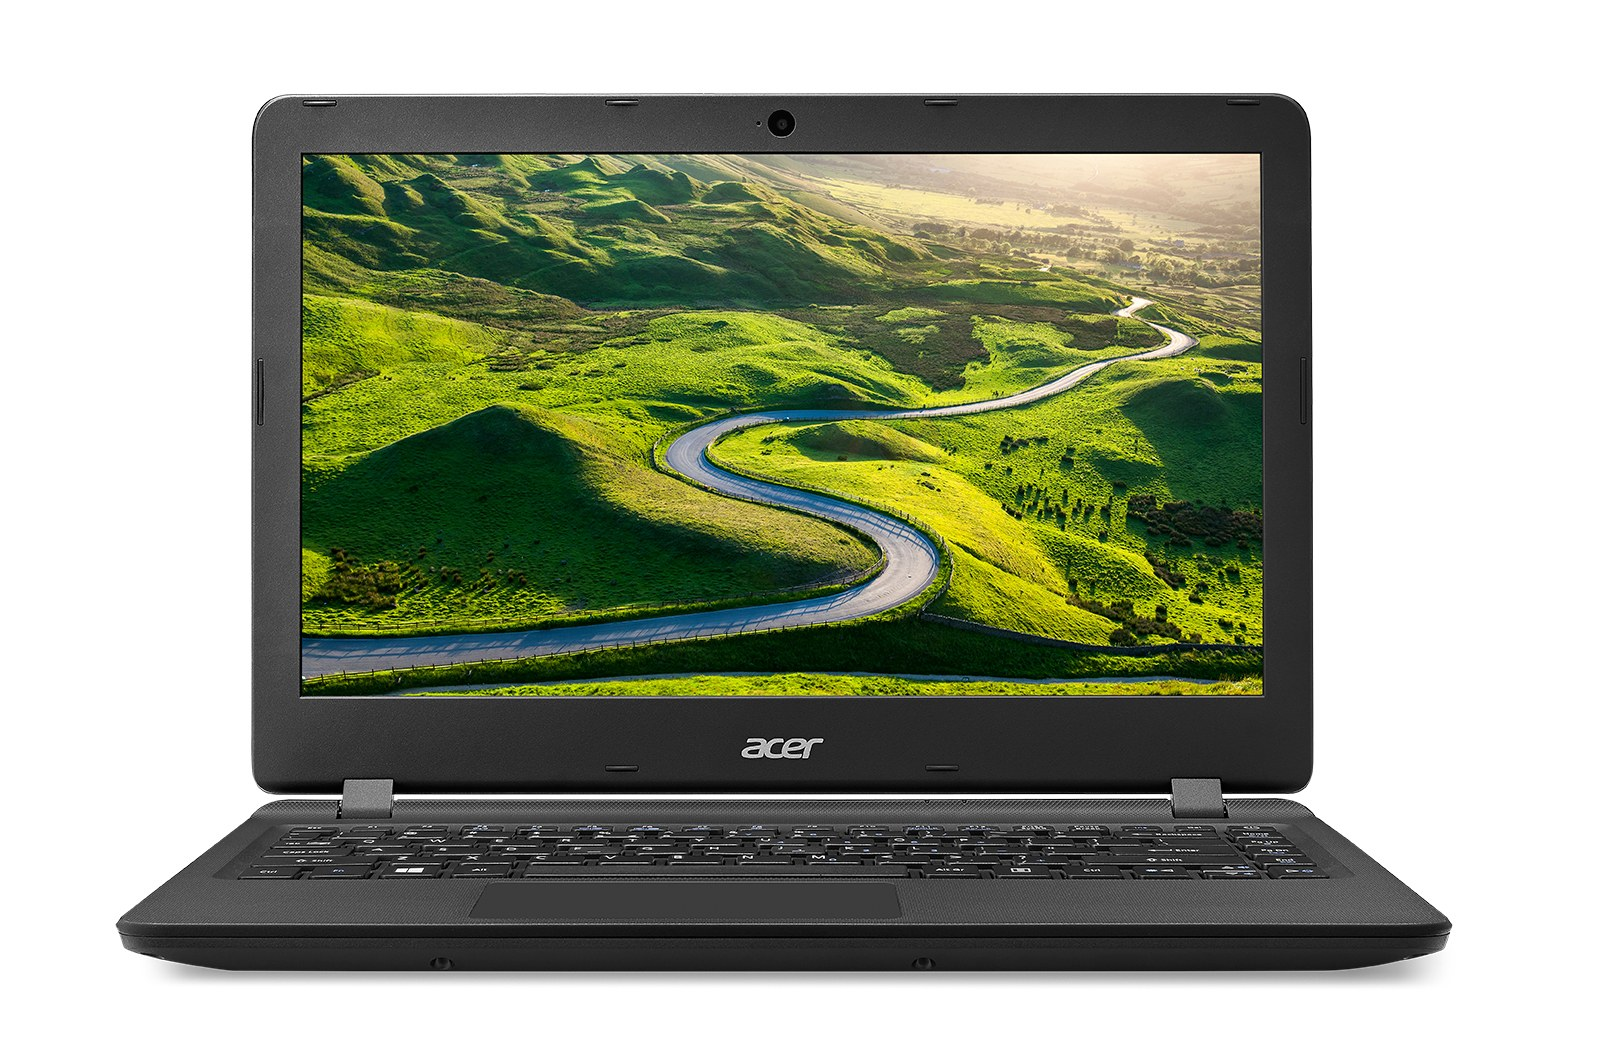 "Acer Aspire ES 13 (ES1-332-C7AK) Celeron N3350/4GB+N/A/eMMC 32GB+N/A/HD Graphics/13.3"" HD matný/BT/W10 Home/Black/One Drive"